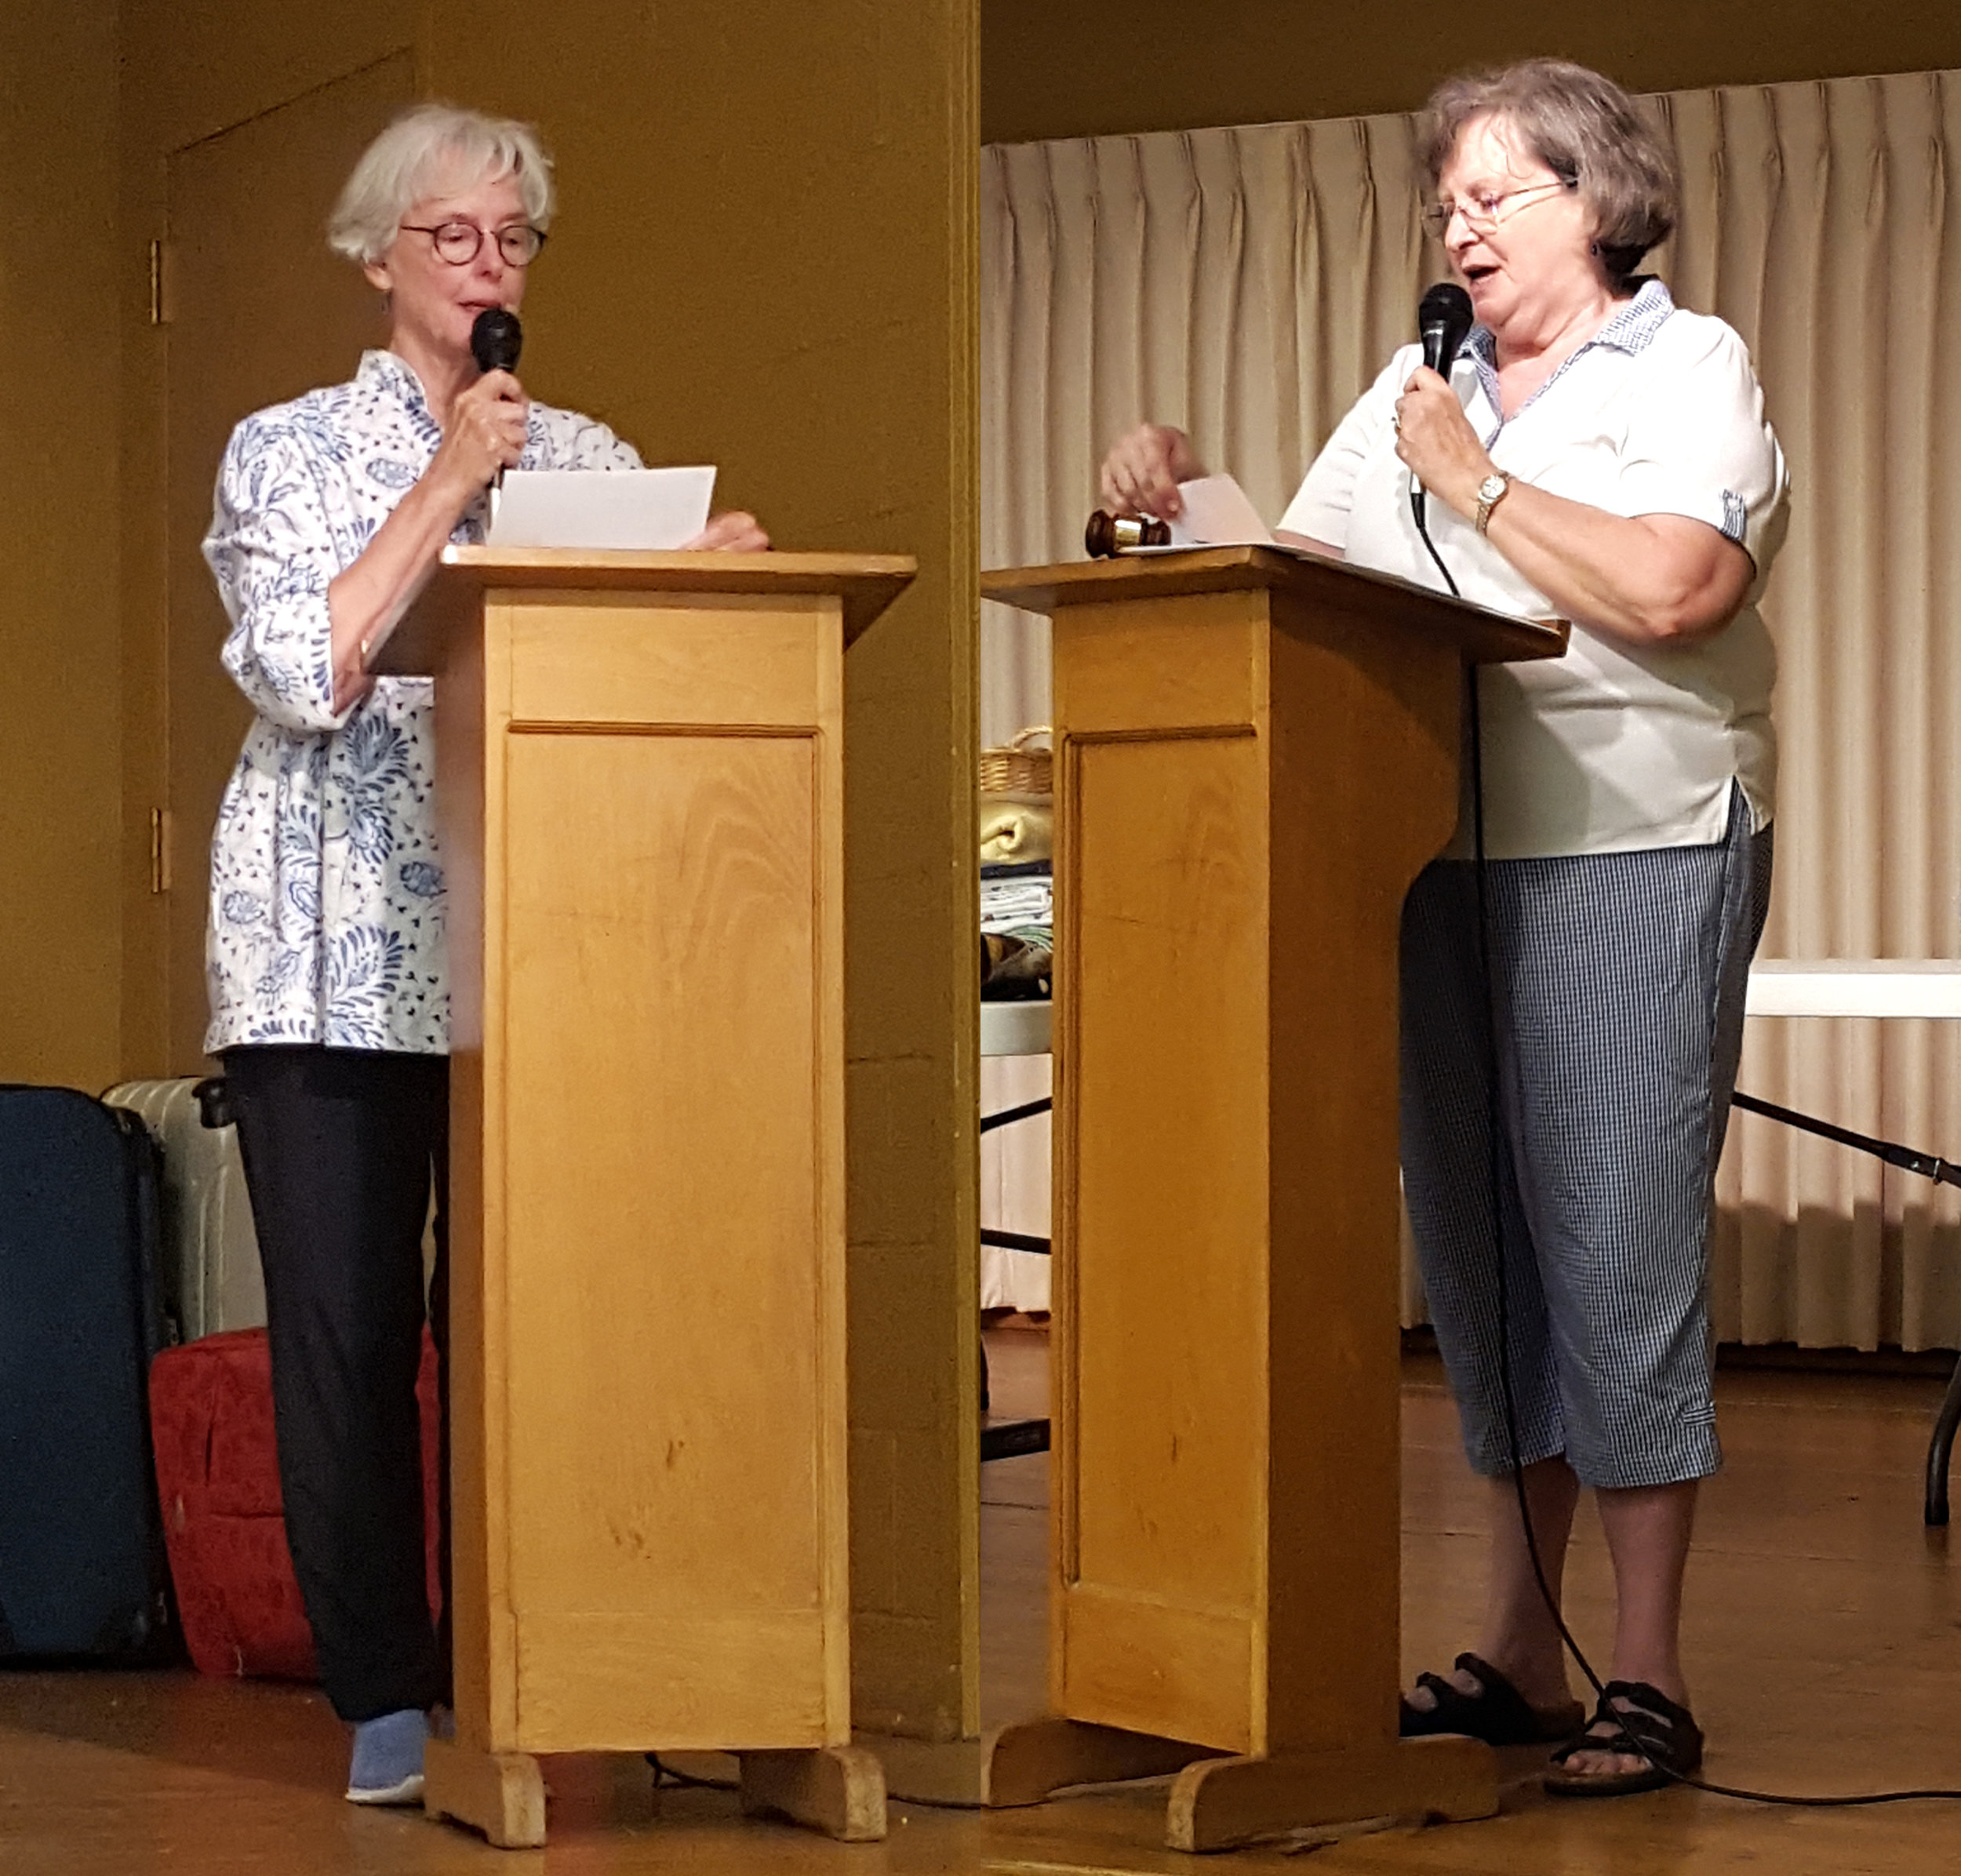 """Firsts"" - Elaine's first meeting as presidentLinda's first introduction of speaker as 1st VP"